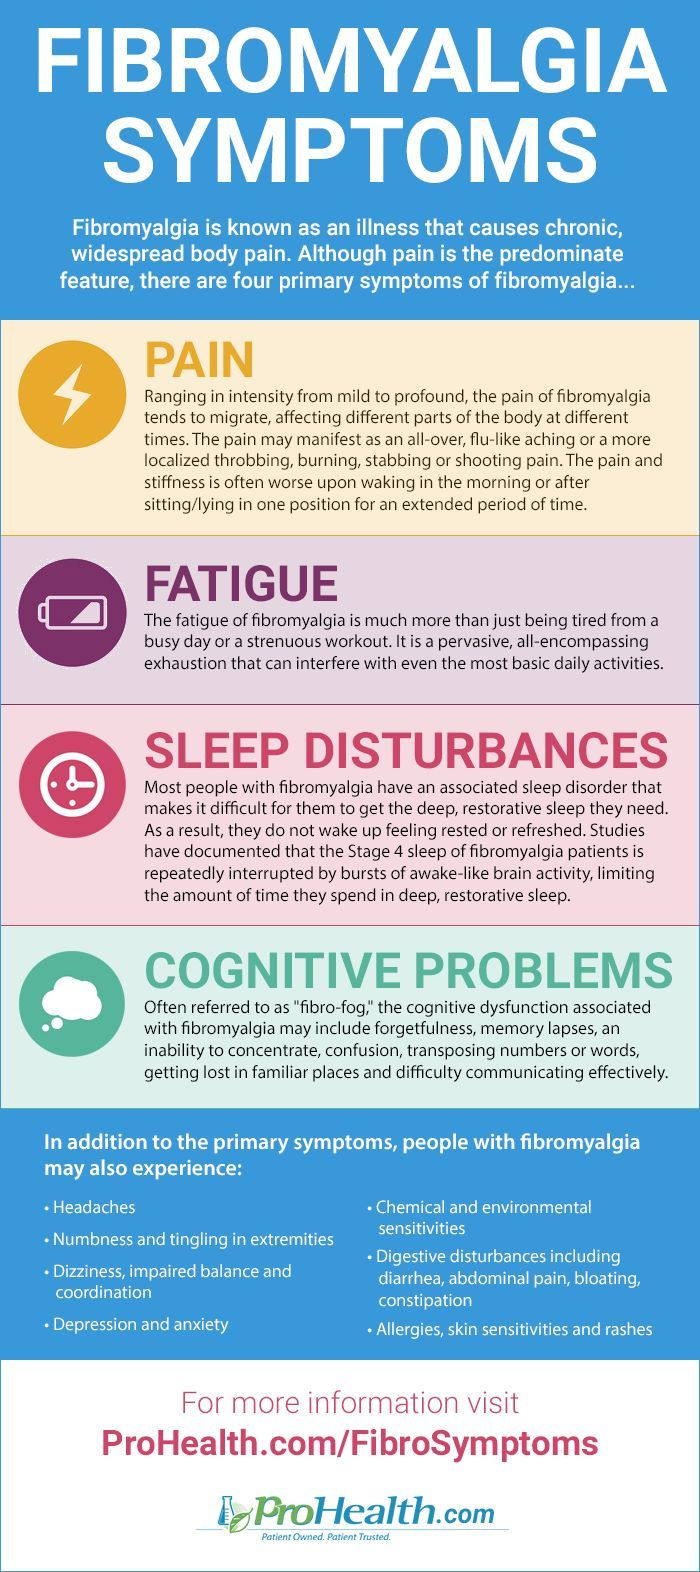 Fatigue remedies for men and women Fibromyalgia Symptoms via http://ProHealth.com